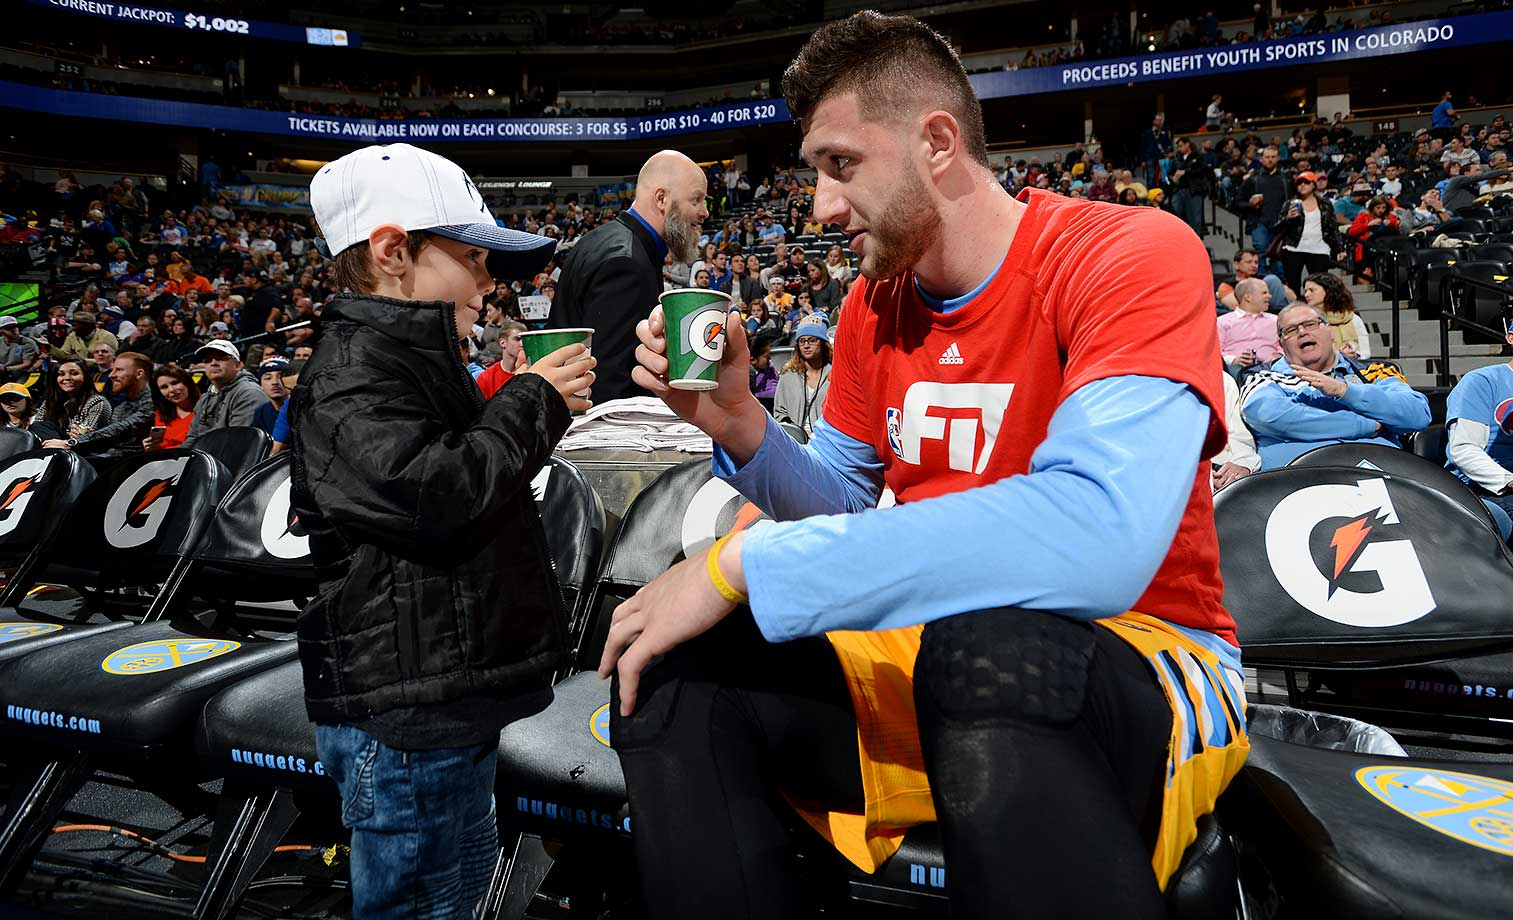 Jusuf Nurkic of the Denver Nuggets talks with a young fan before the game against the Detroit Pistons.